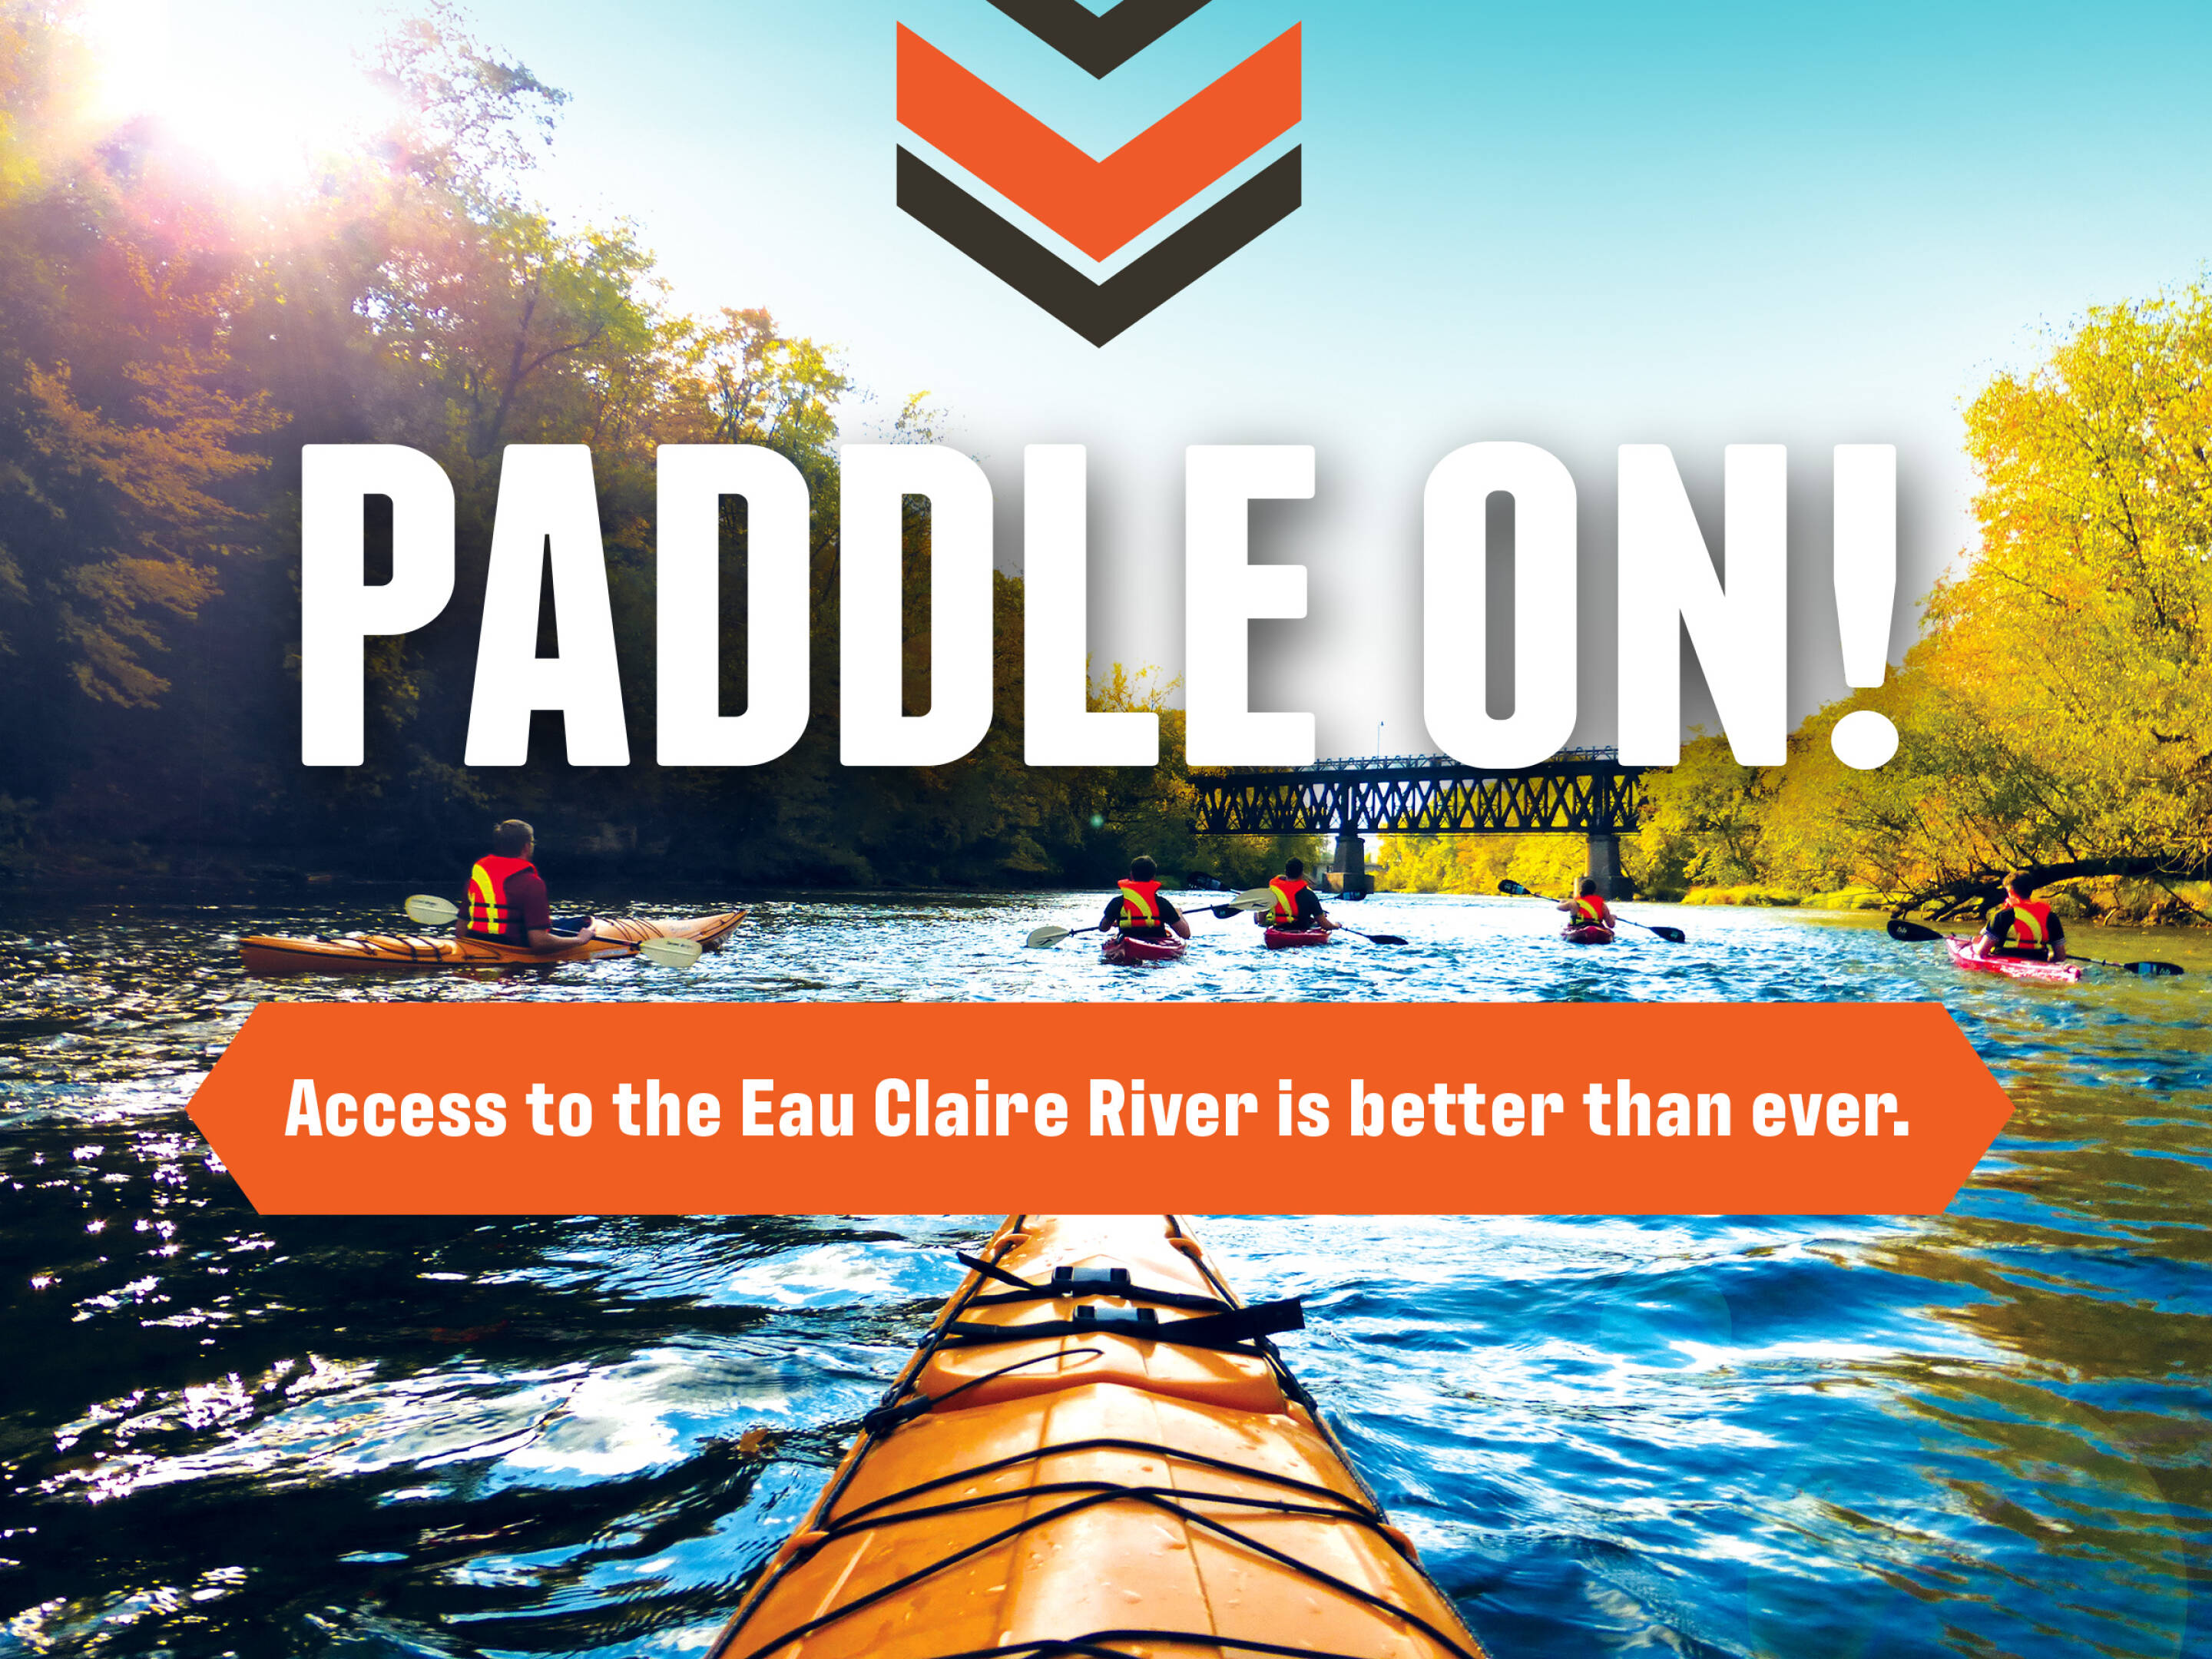 Paddle On: Access to the Eau Claire River is better than ever.